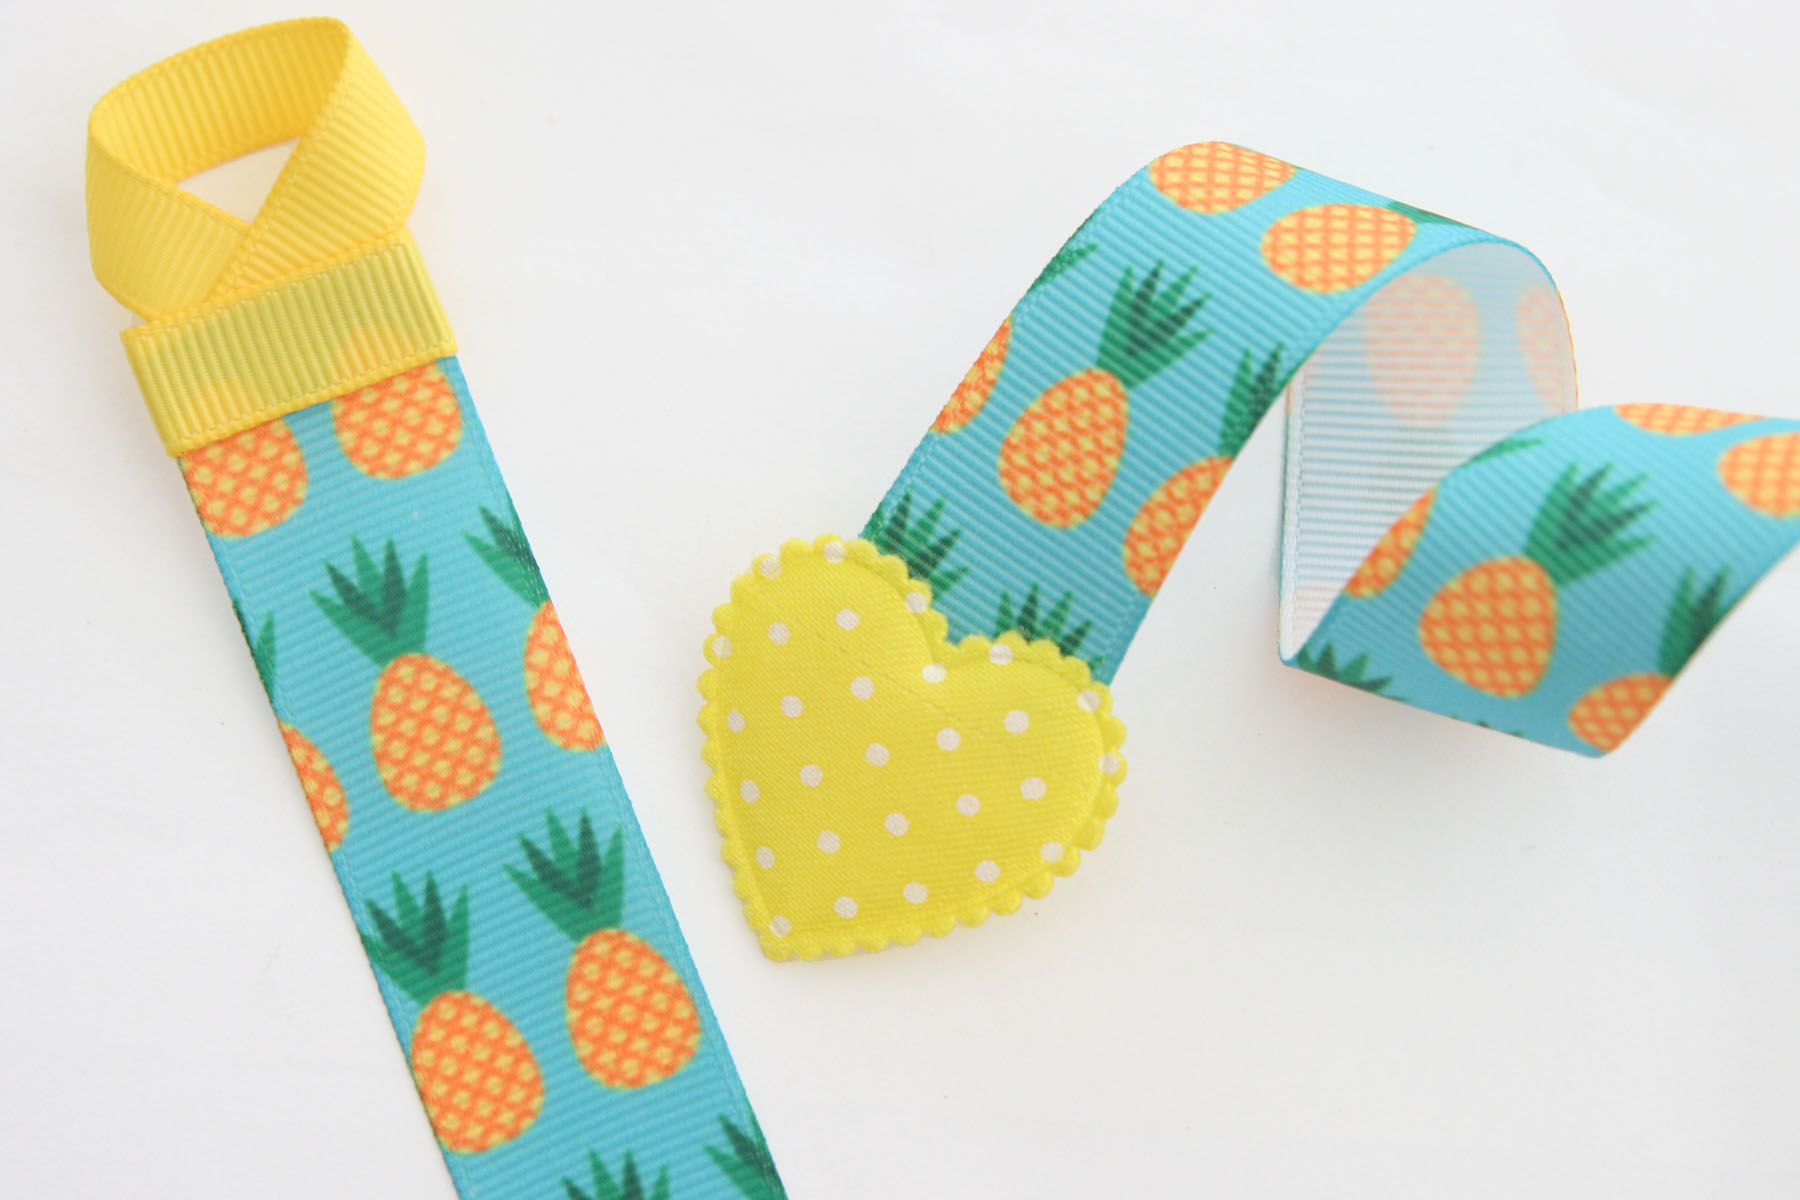 Basic Holder - Pineapple Print